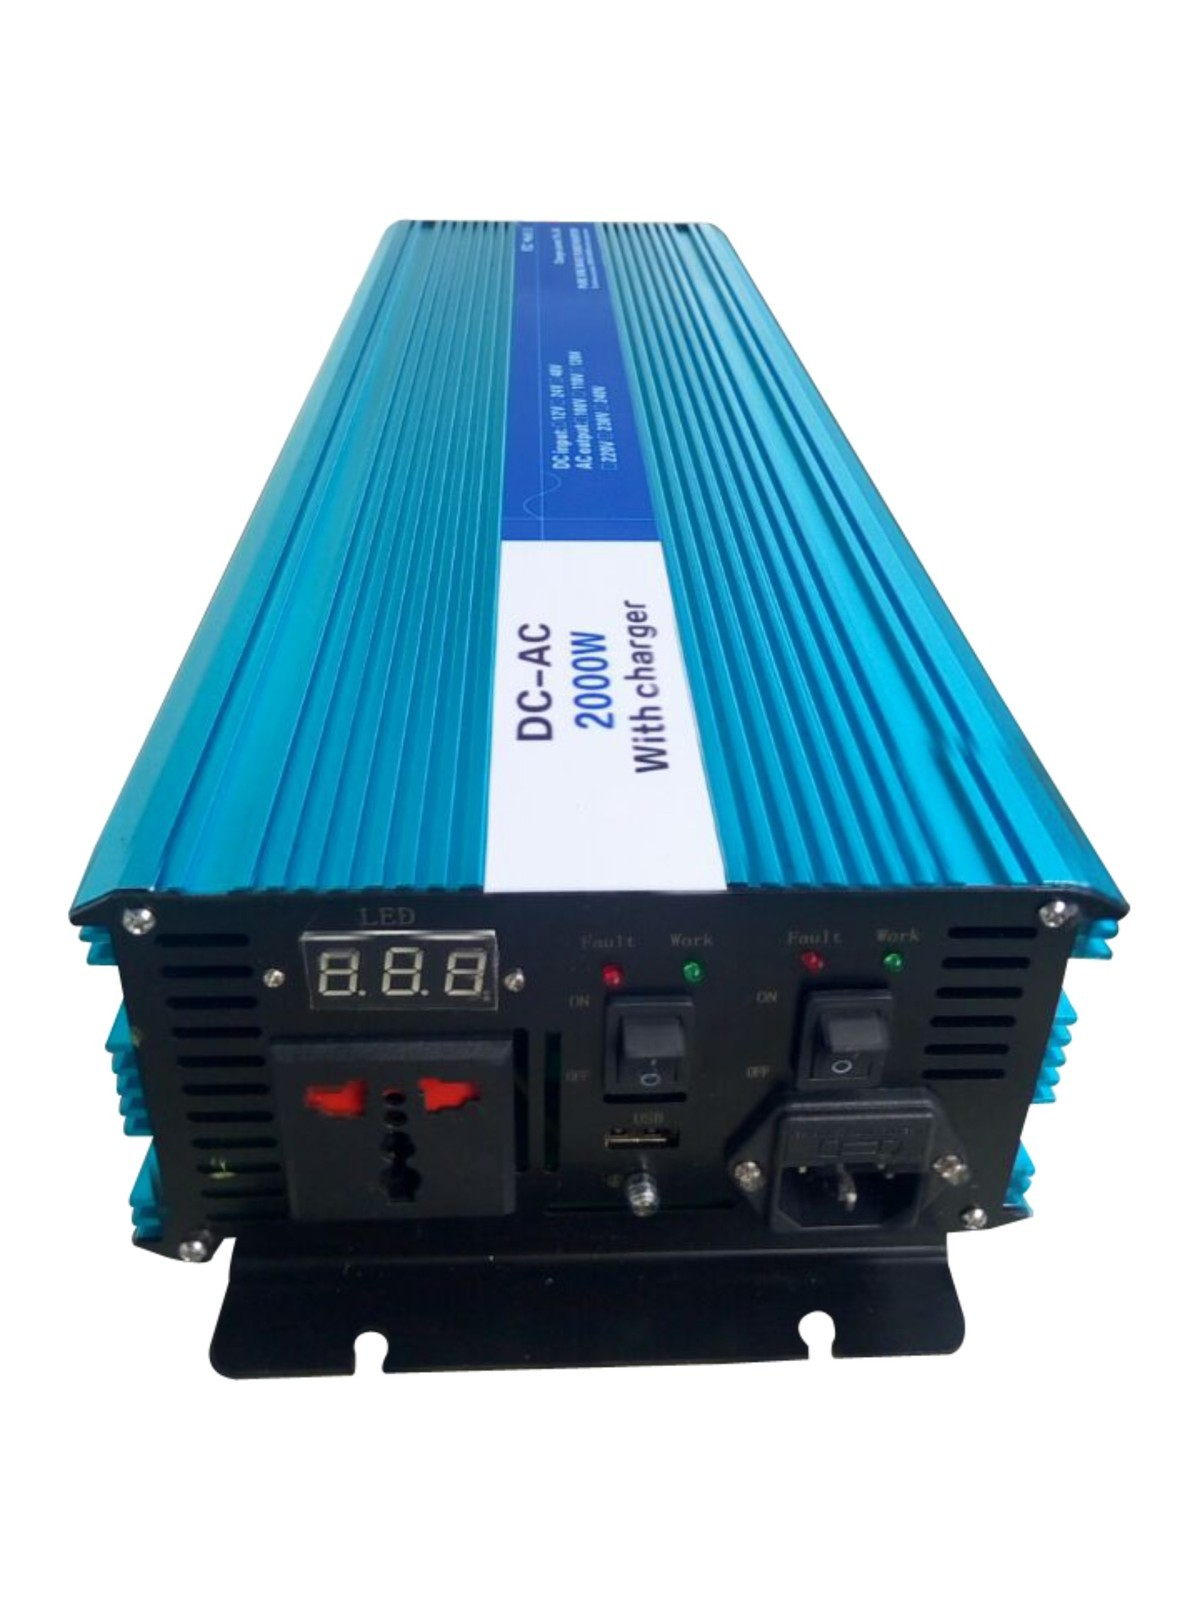 Full Power 2000W Pure Sine Wave Inverter,DC 12V/24V/48V To AC 110V/220V,off Grid Solar Inverter With Battery Charger And UPS 3000w wind solar hybrid off grid inverter dc to ac 12v 24v 110v 220v 3kw pure sine wave inverter